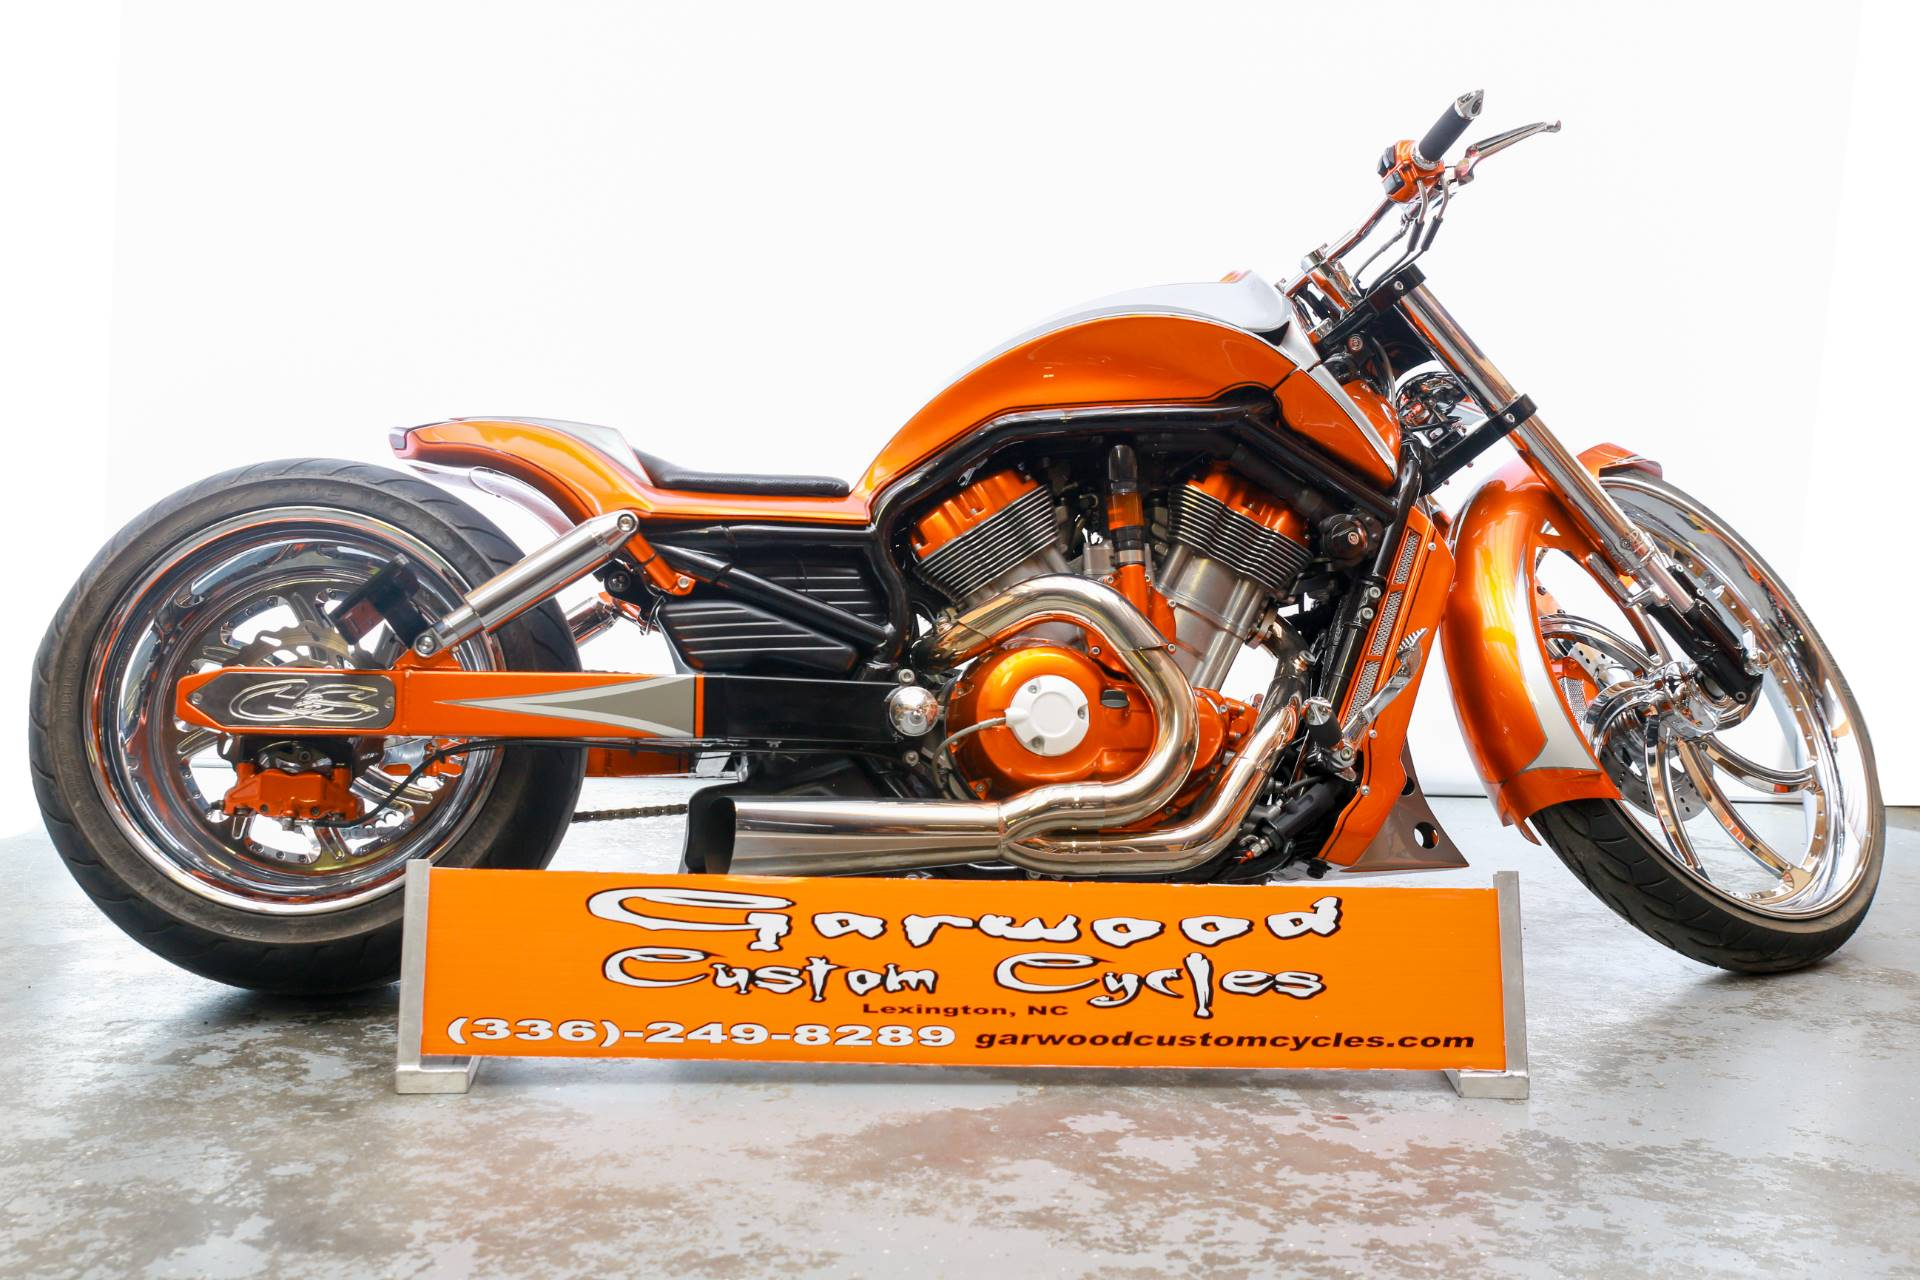 2013 Harley Davidson V-ROD MUSCLE in Lexington, North Carolina - Photo 1